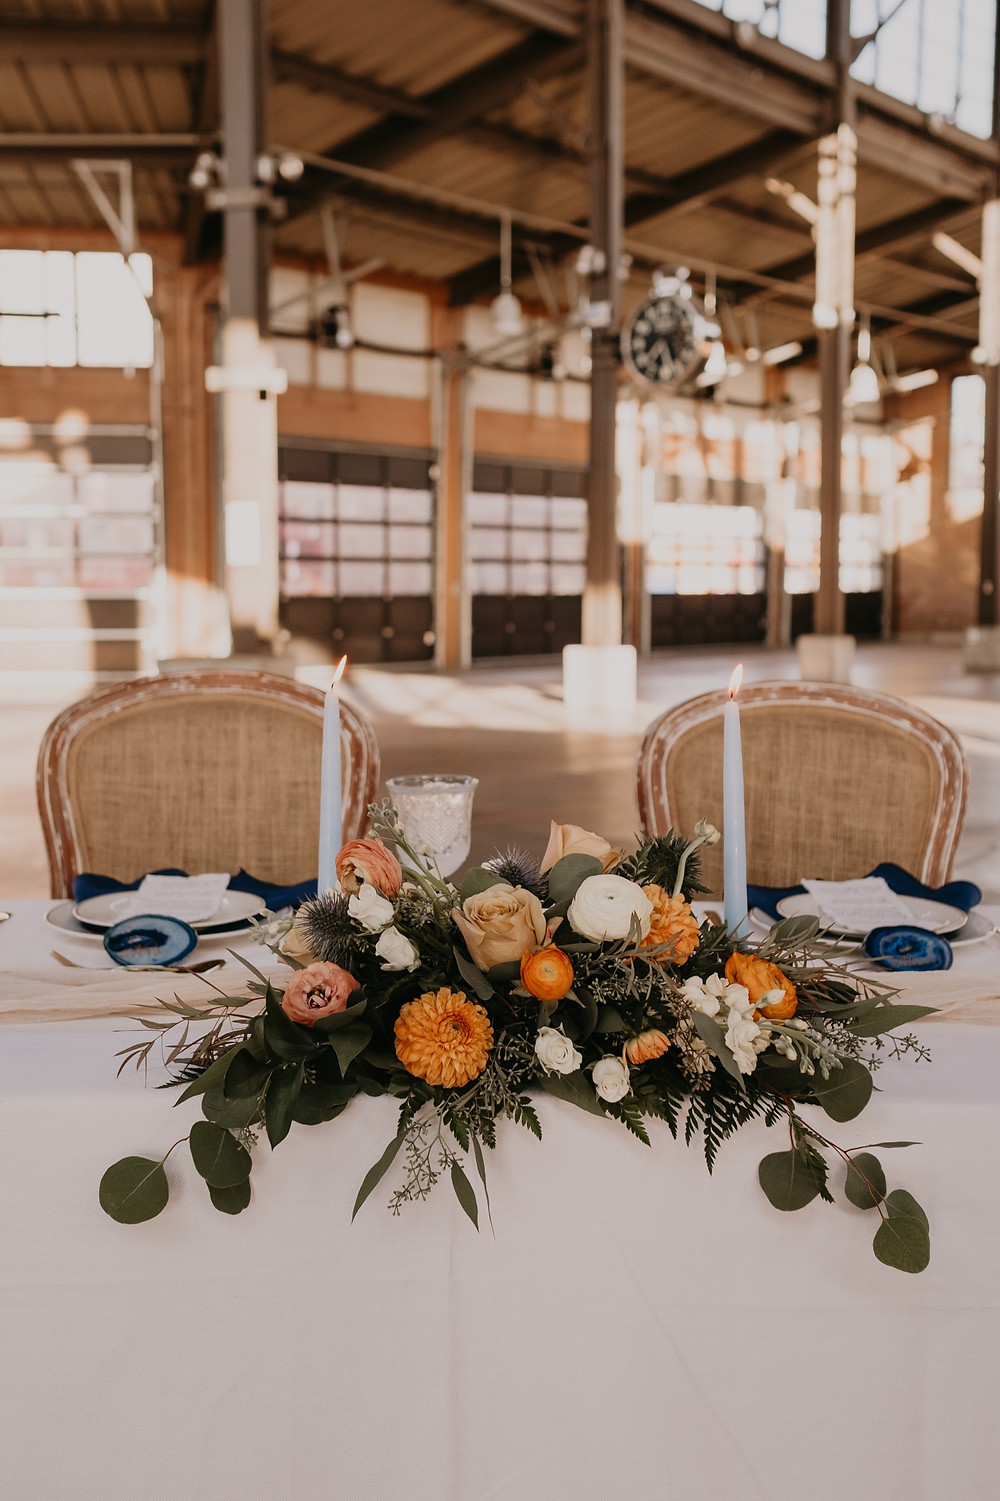 Head table flowers by Copper + Sage Collective. Photographed by Nicole Leanne Photography.